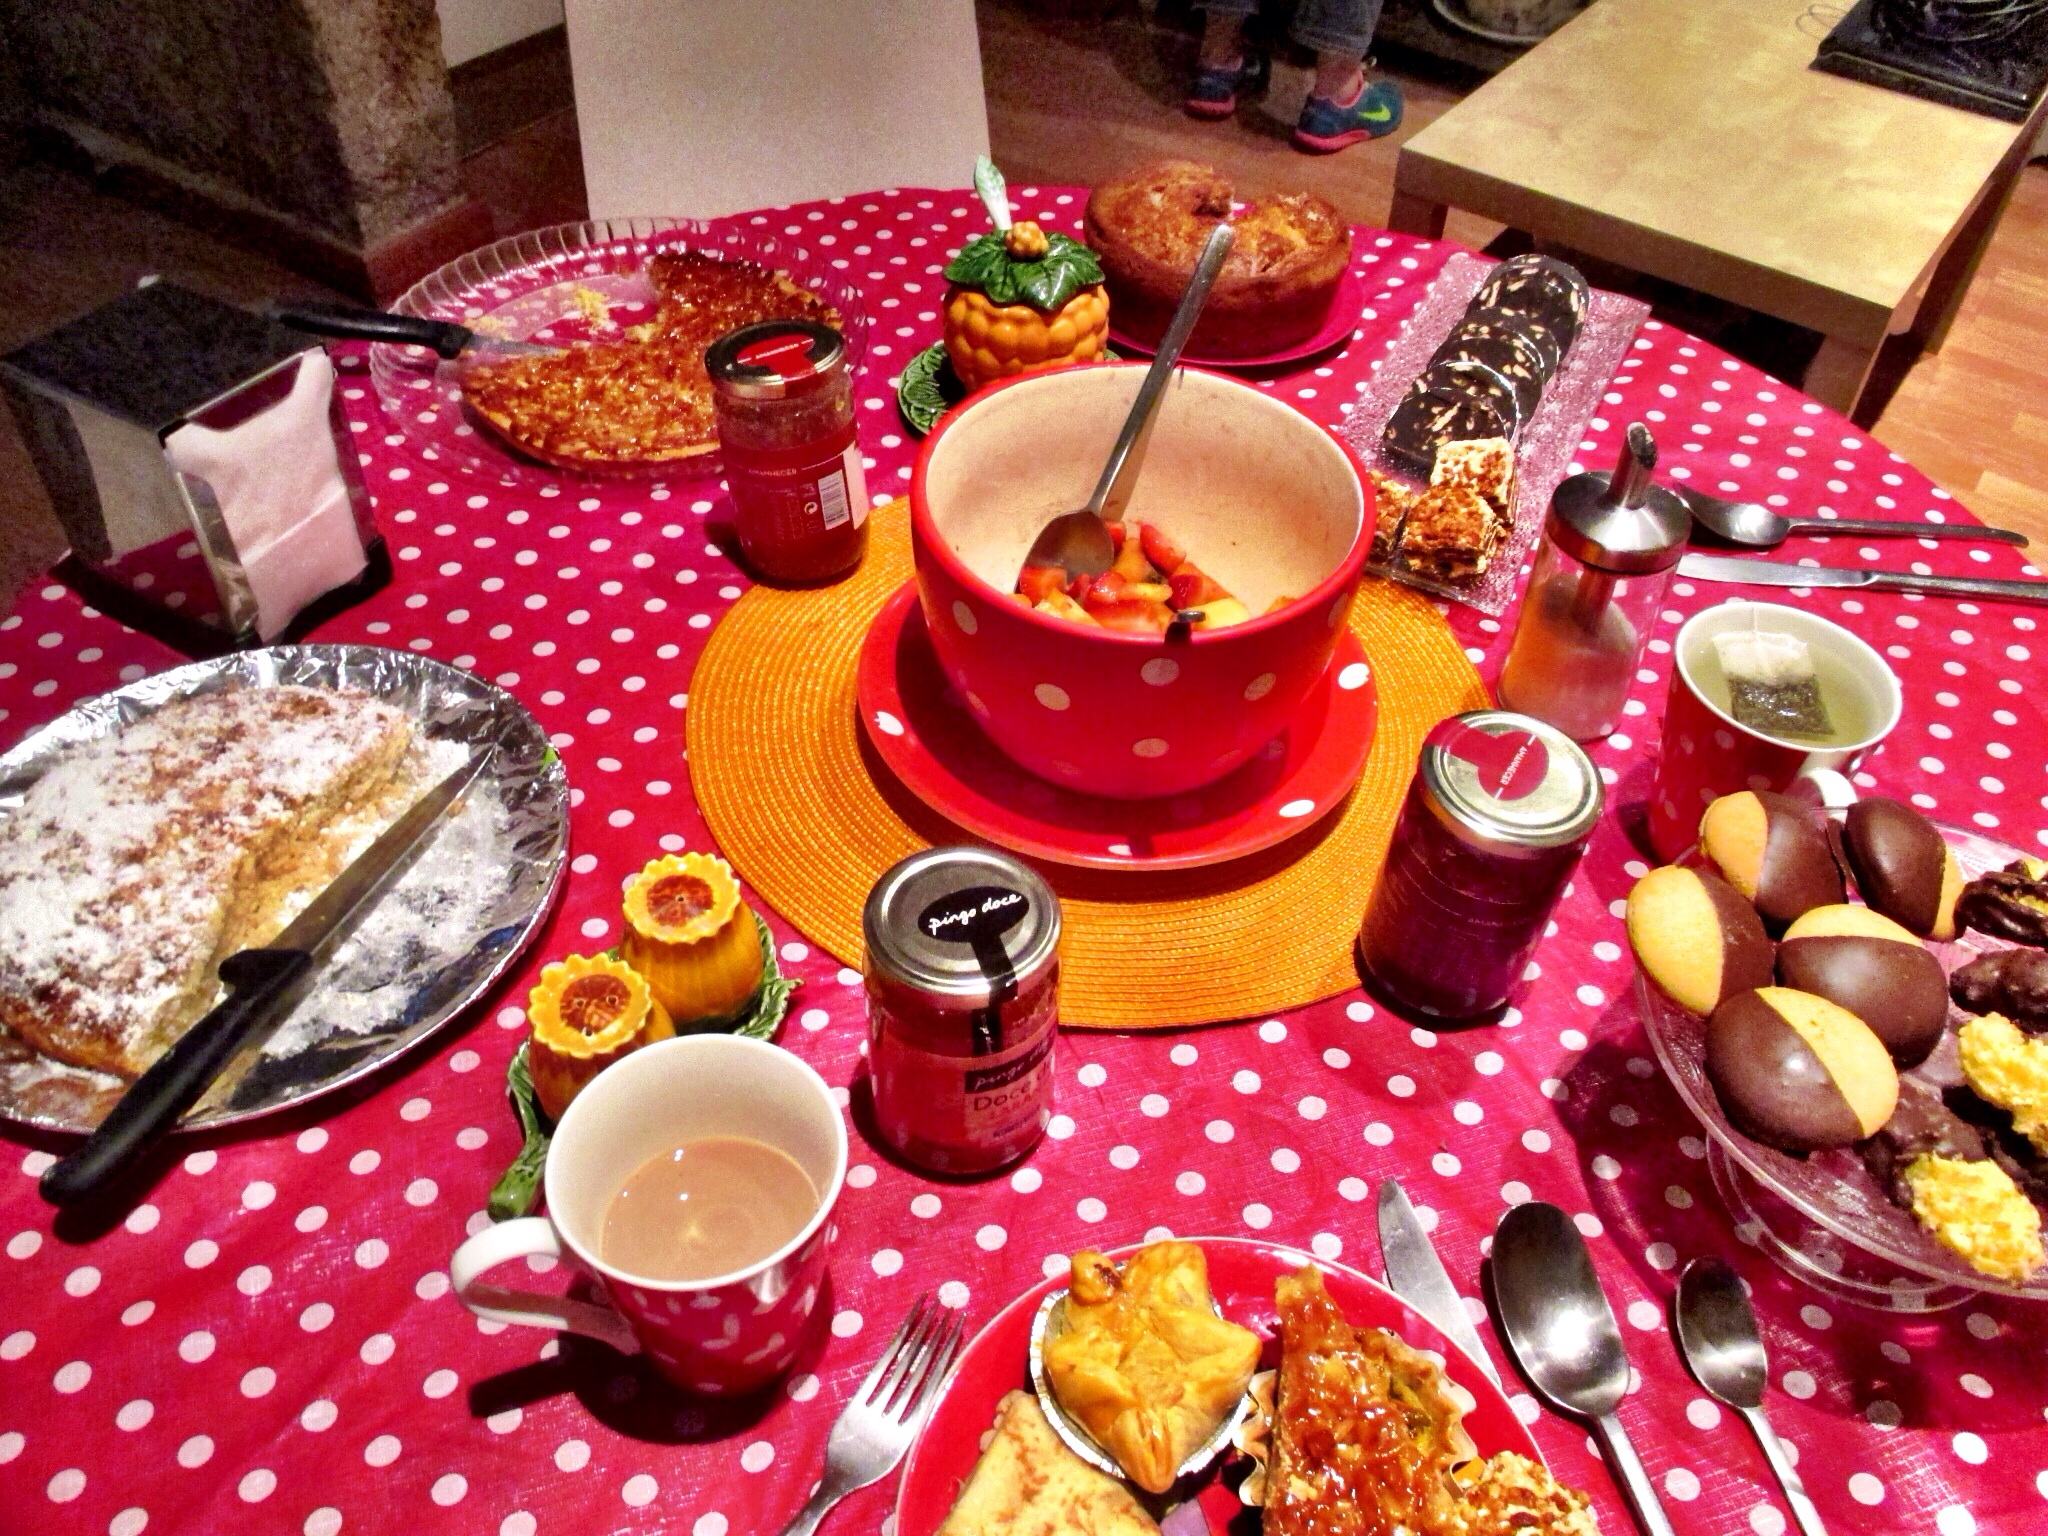 Just a tiny portion of the delicacies on Paula's breakfast table at Pensao Royal in Lisbon